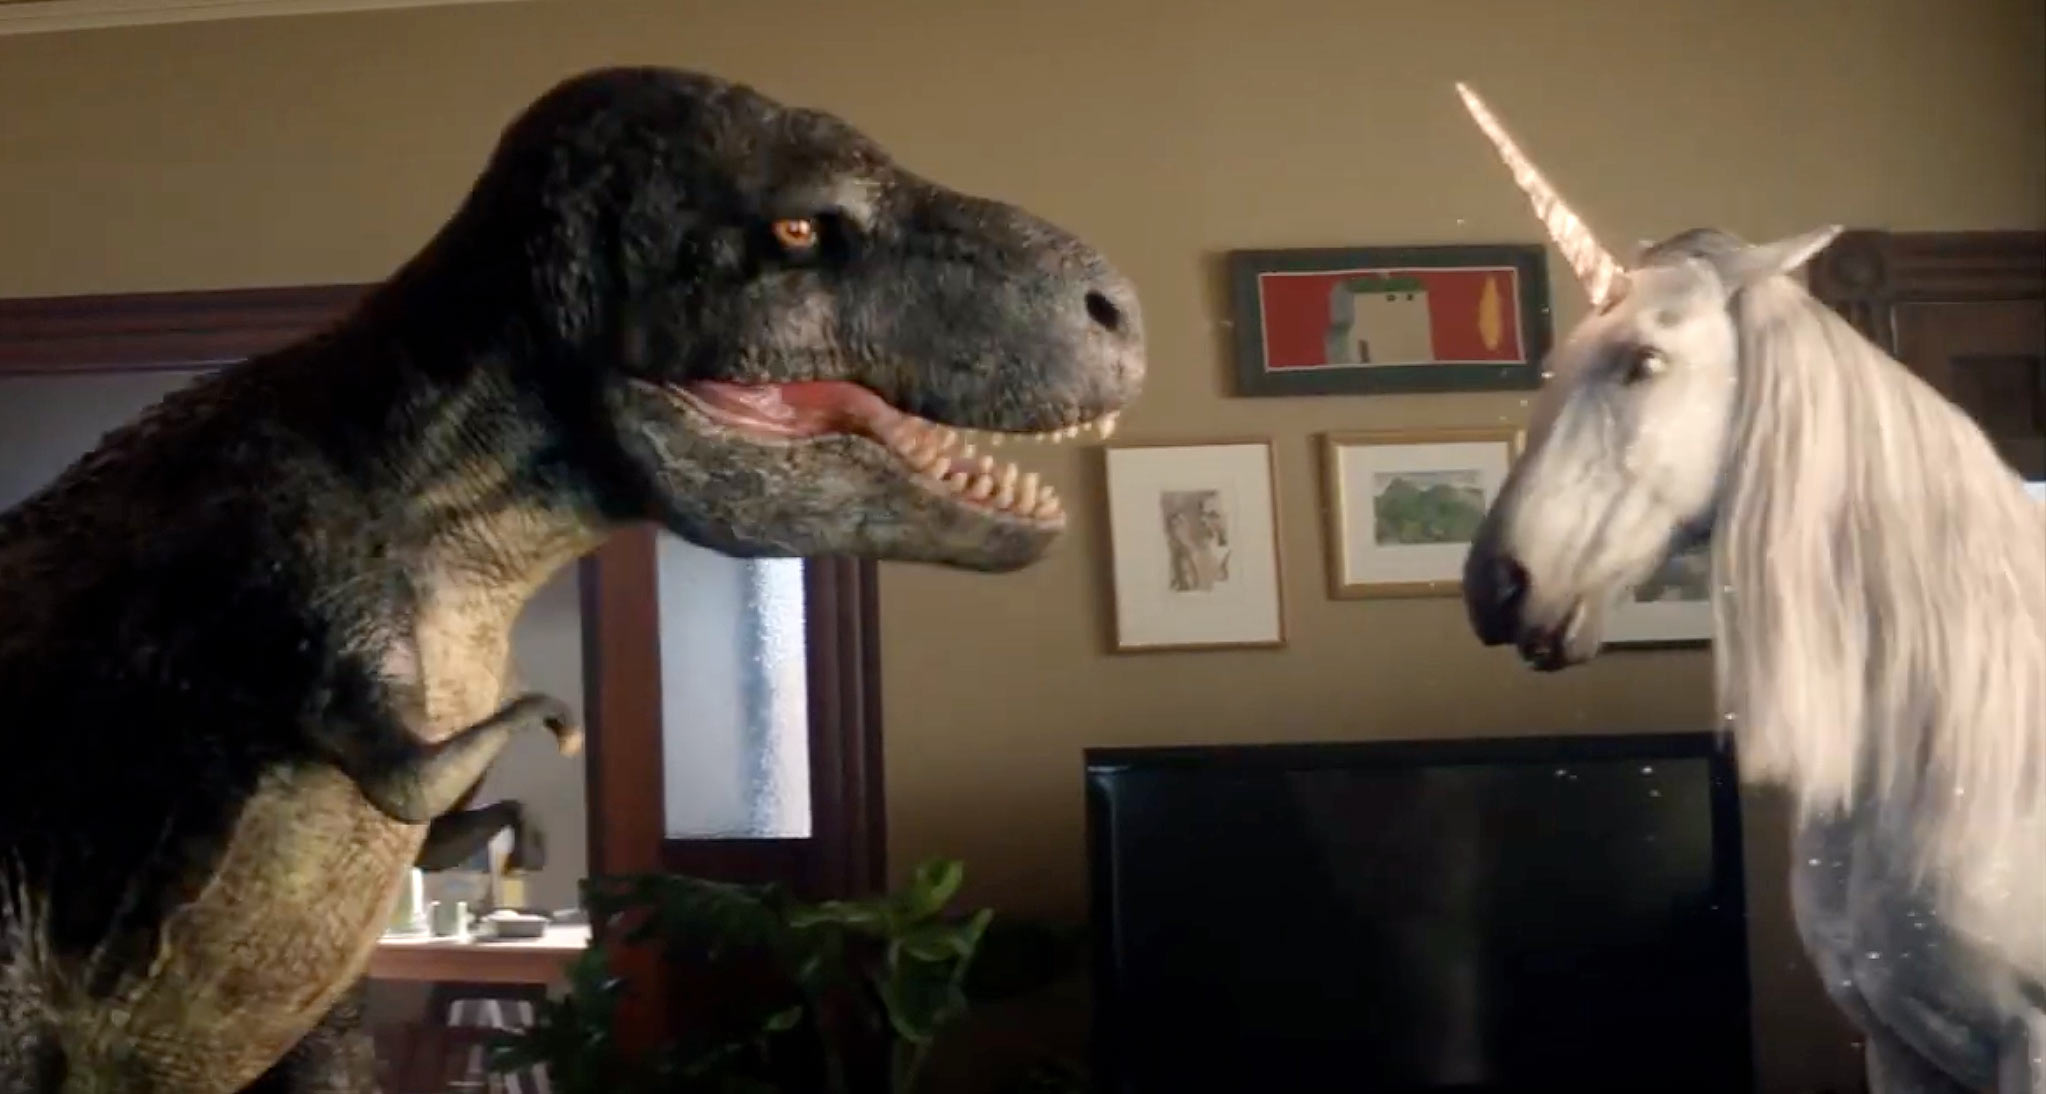 When A T Rex Does Battle With A Unicorn In Your Home You Better Have Insurance Branding In Asia Magazine